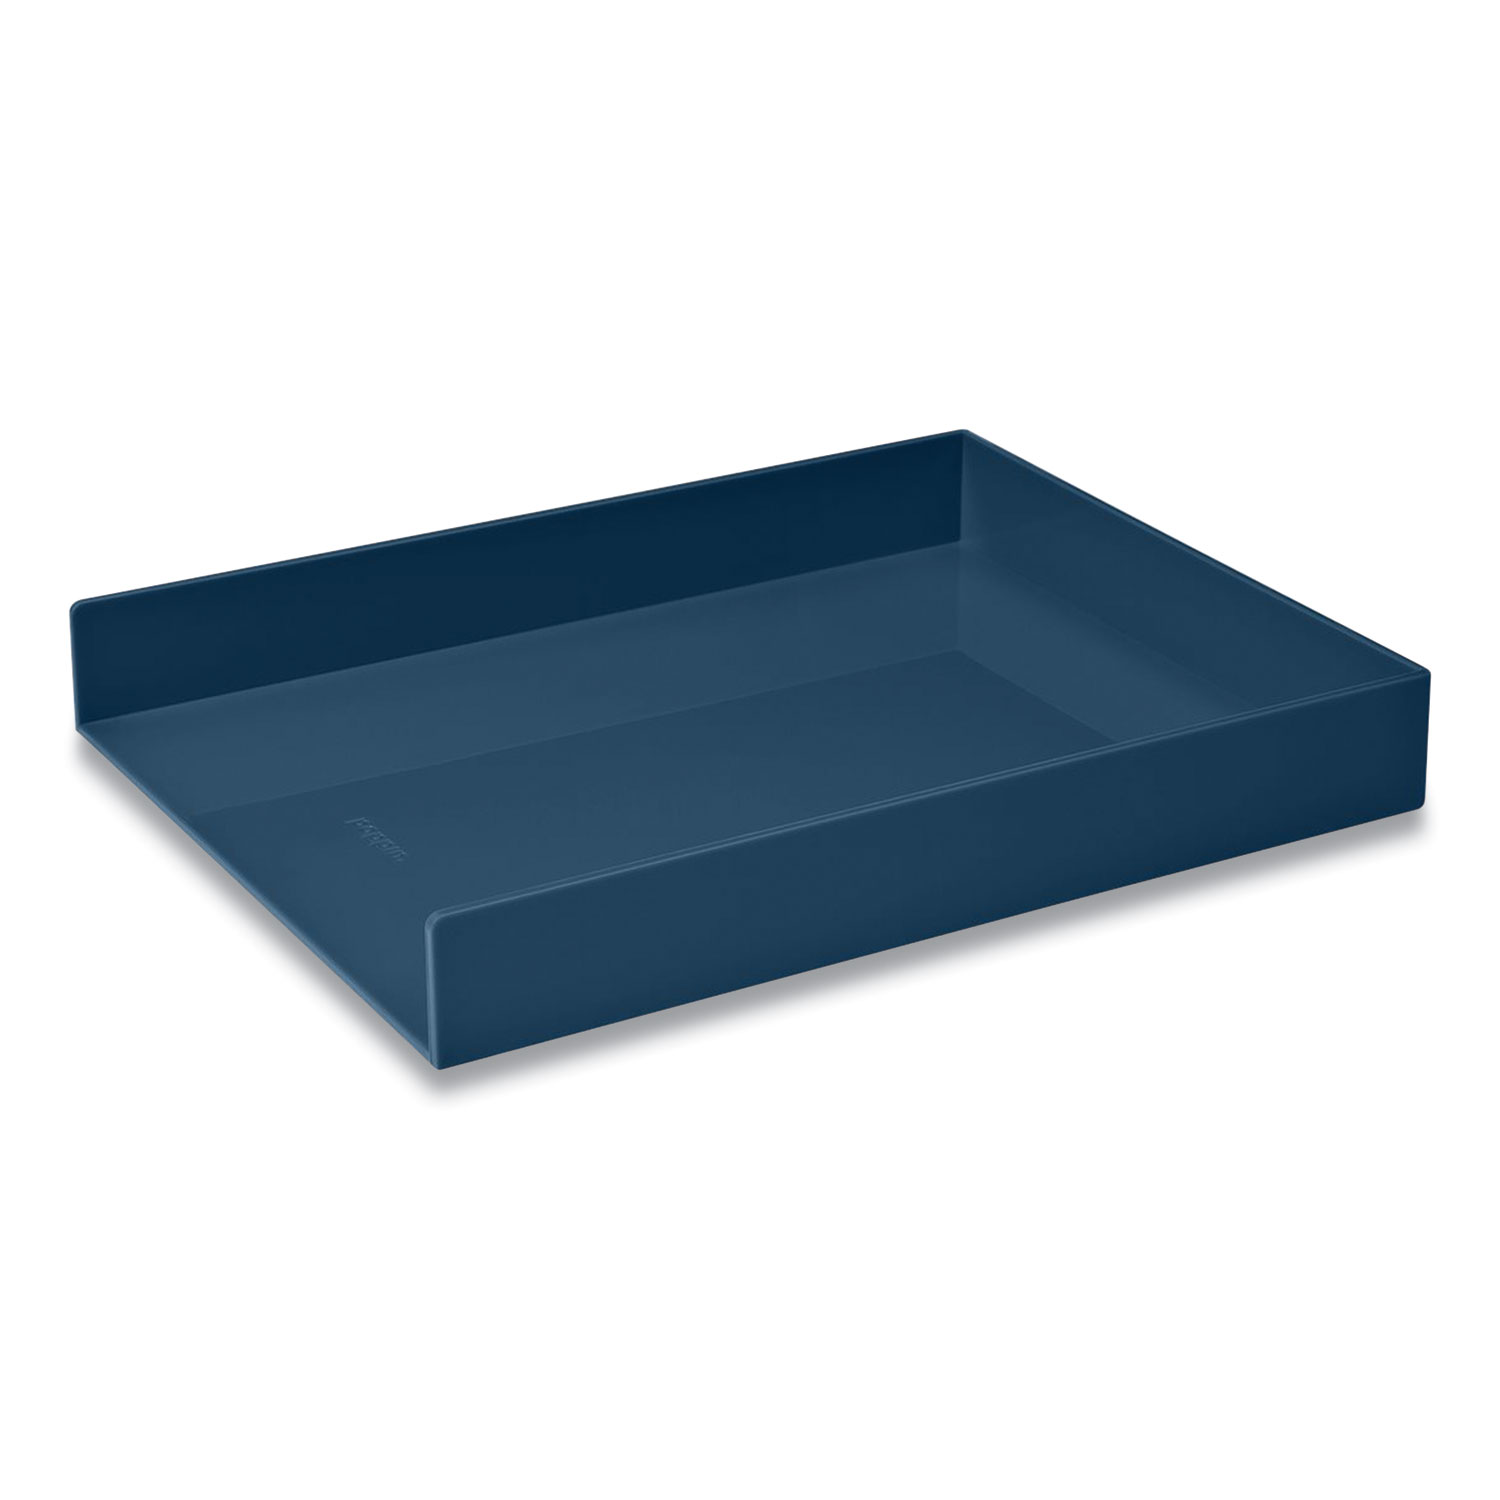 Picture of Stackable Letter Trays, 1 Section, Letter Size Files, 9.75 x 12.5 x 1.75, Slate Blue